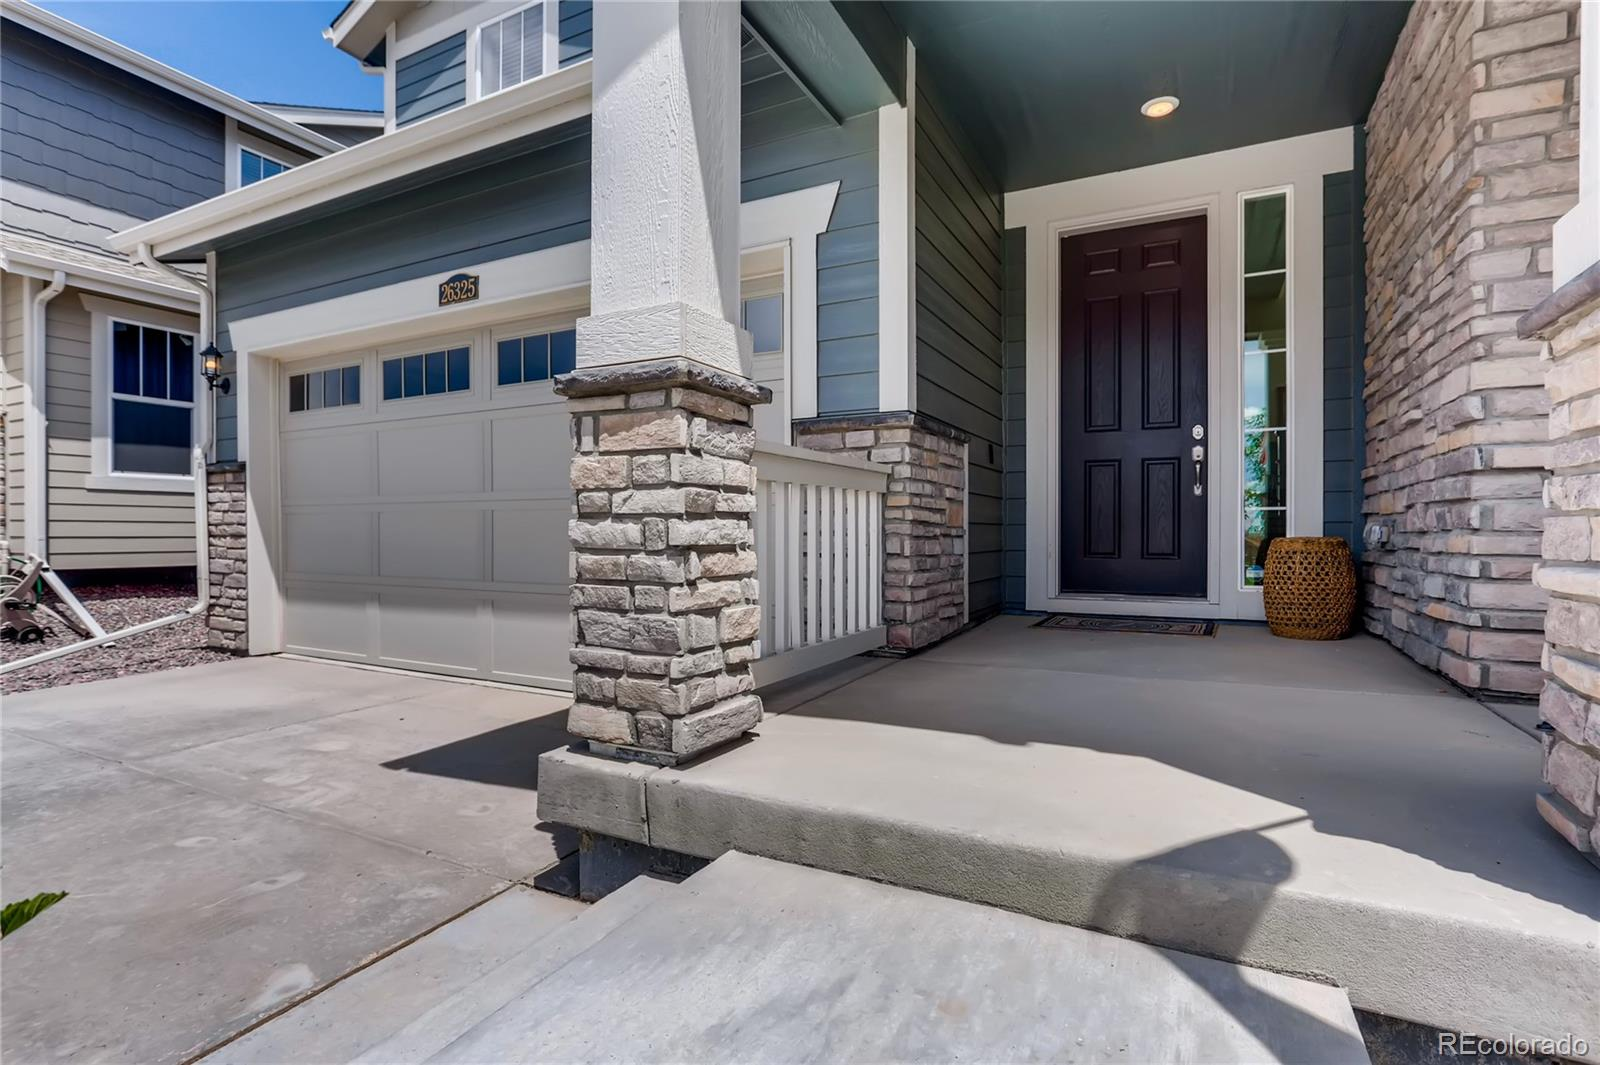 MLS# 2145354 - 4 - 26325 E Canal Place, Aurora, CO 80018